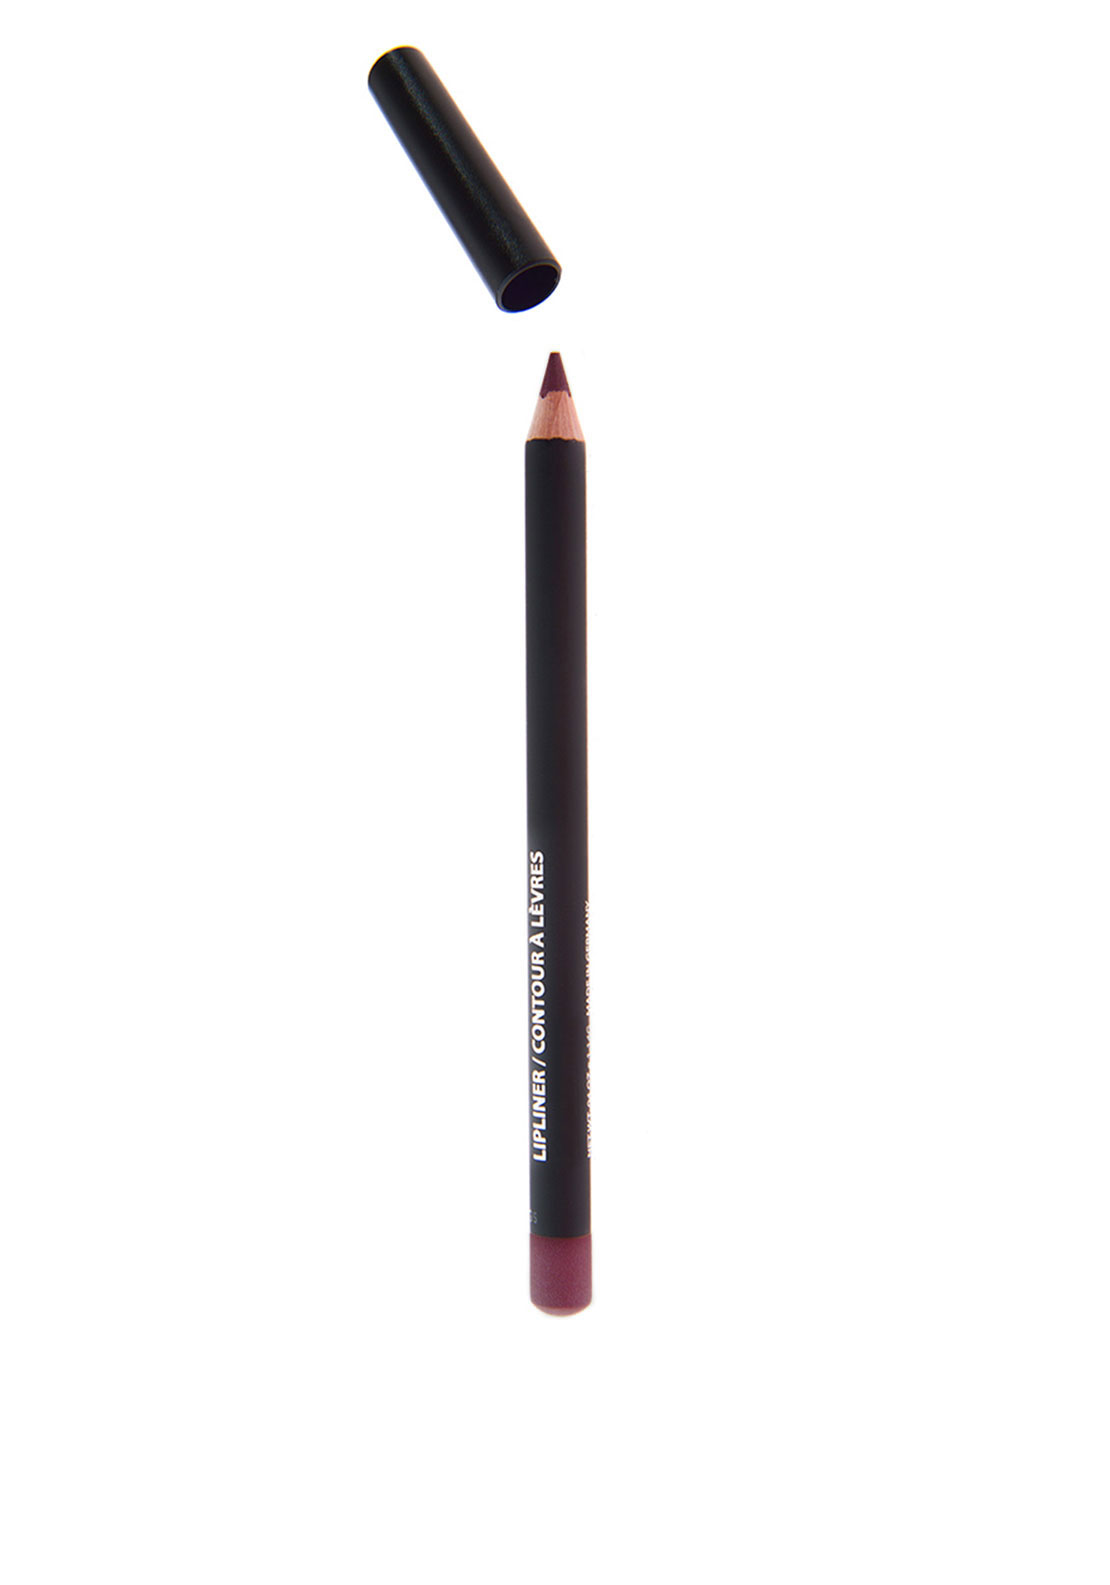 Lynda Strain Love Lynda Lip Pencil, Indian red